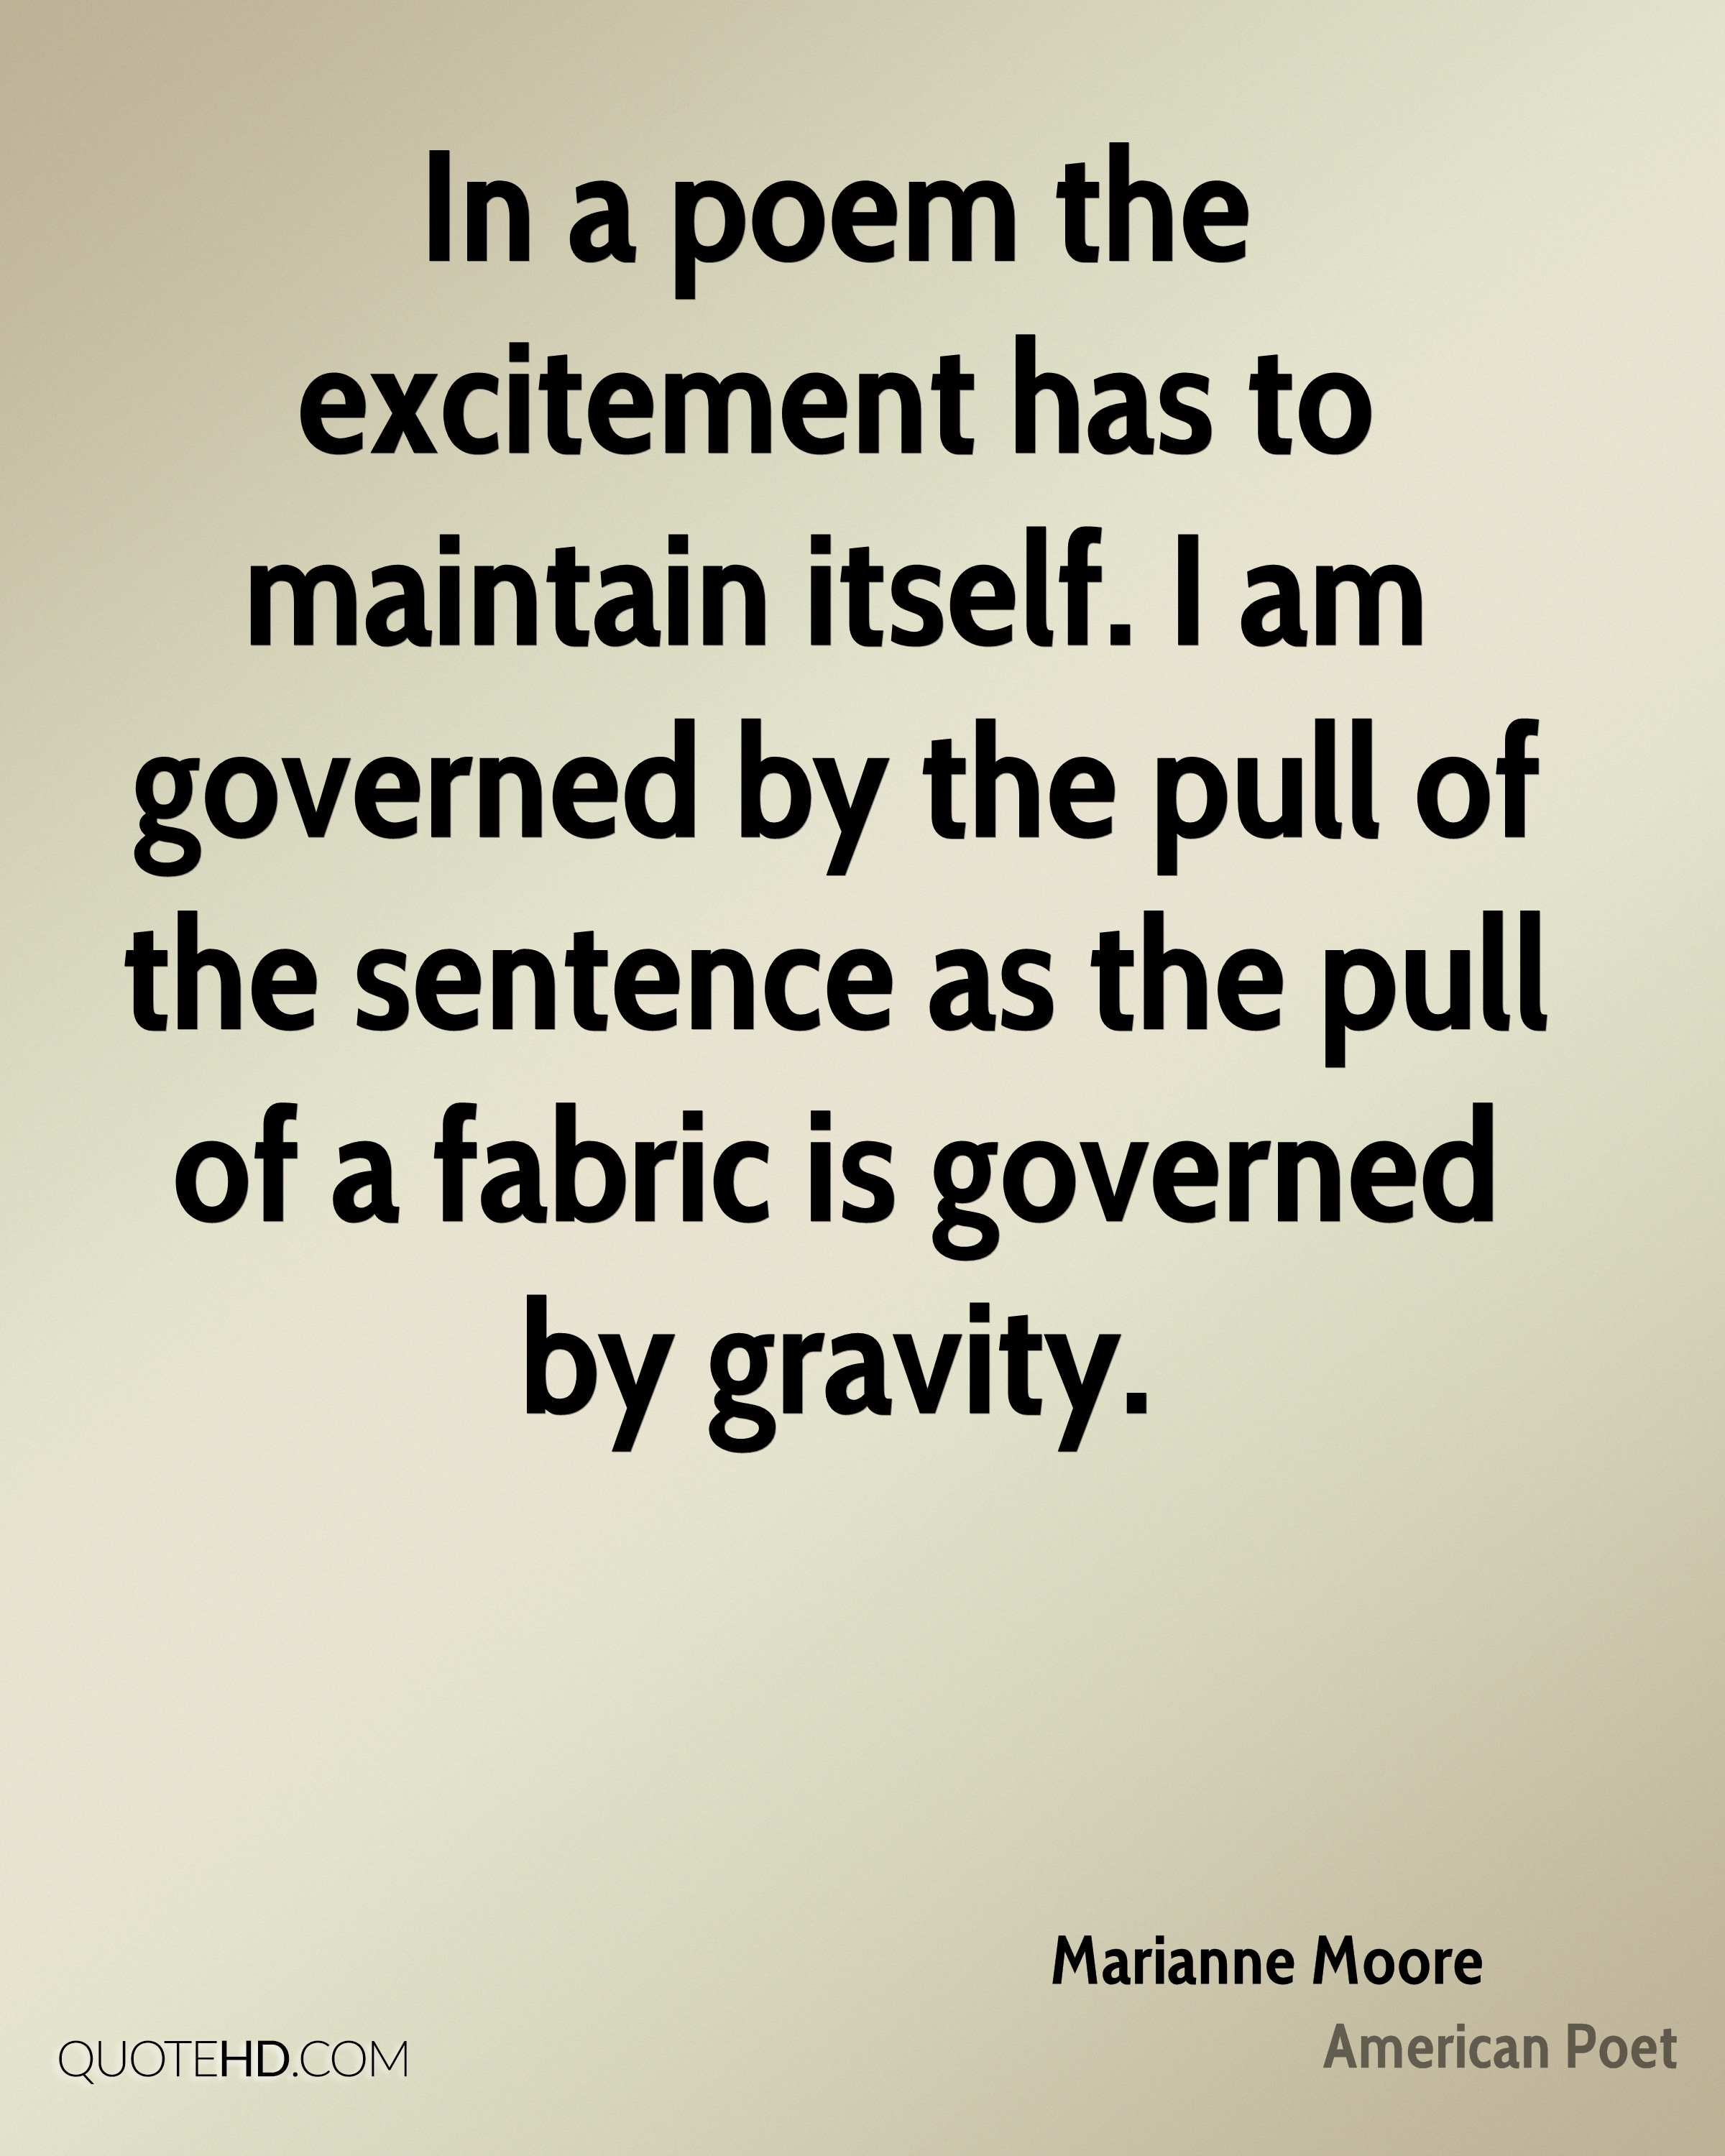 In a poem the excitement has to maintain itself. I am governed by the pull of the sentence as the pull of a fabric is governed by gravity.